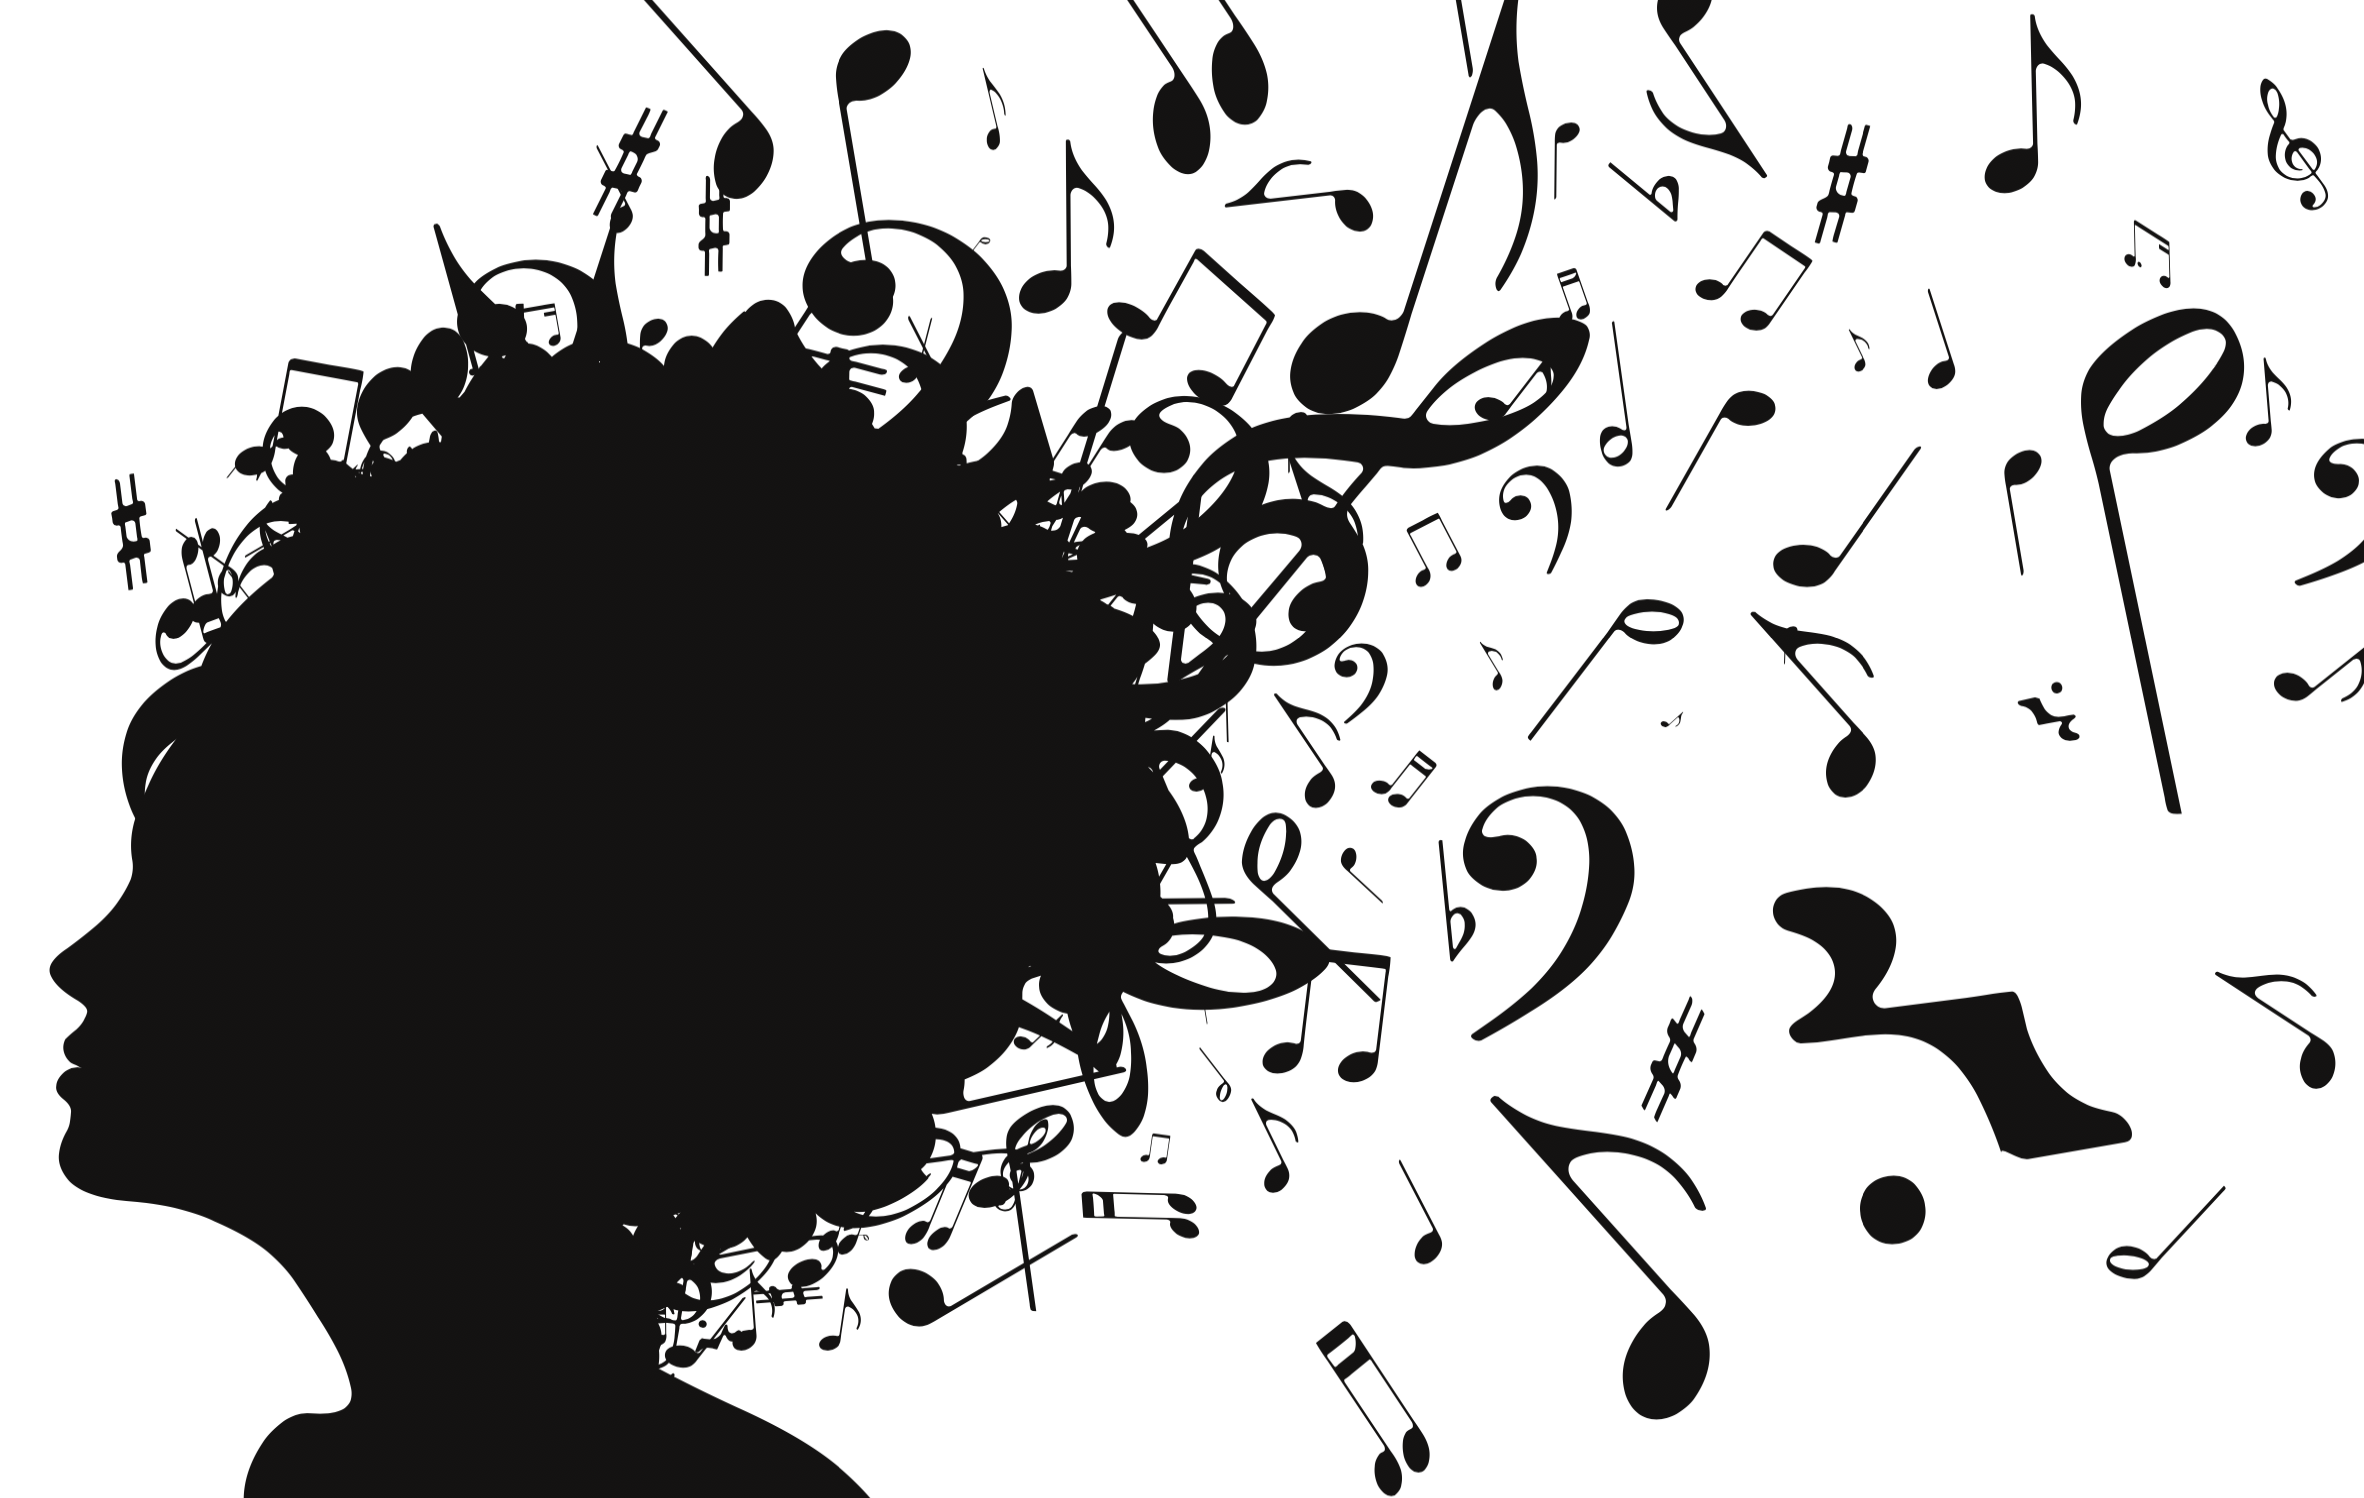 A decorative image of musical notes flying out of an up-do of hair.